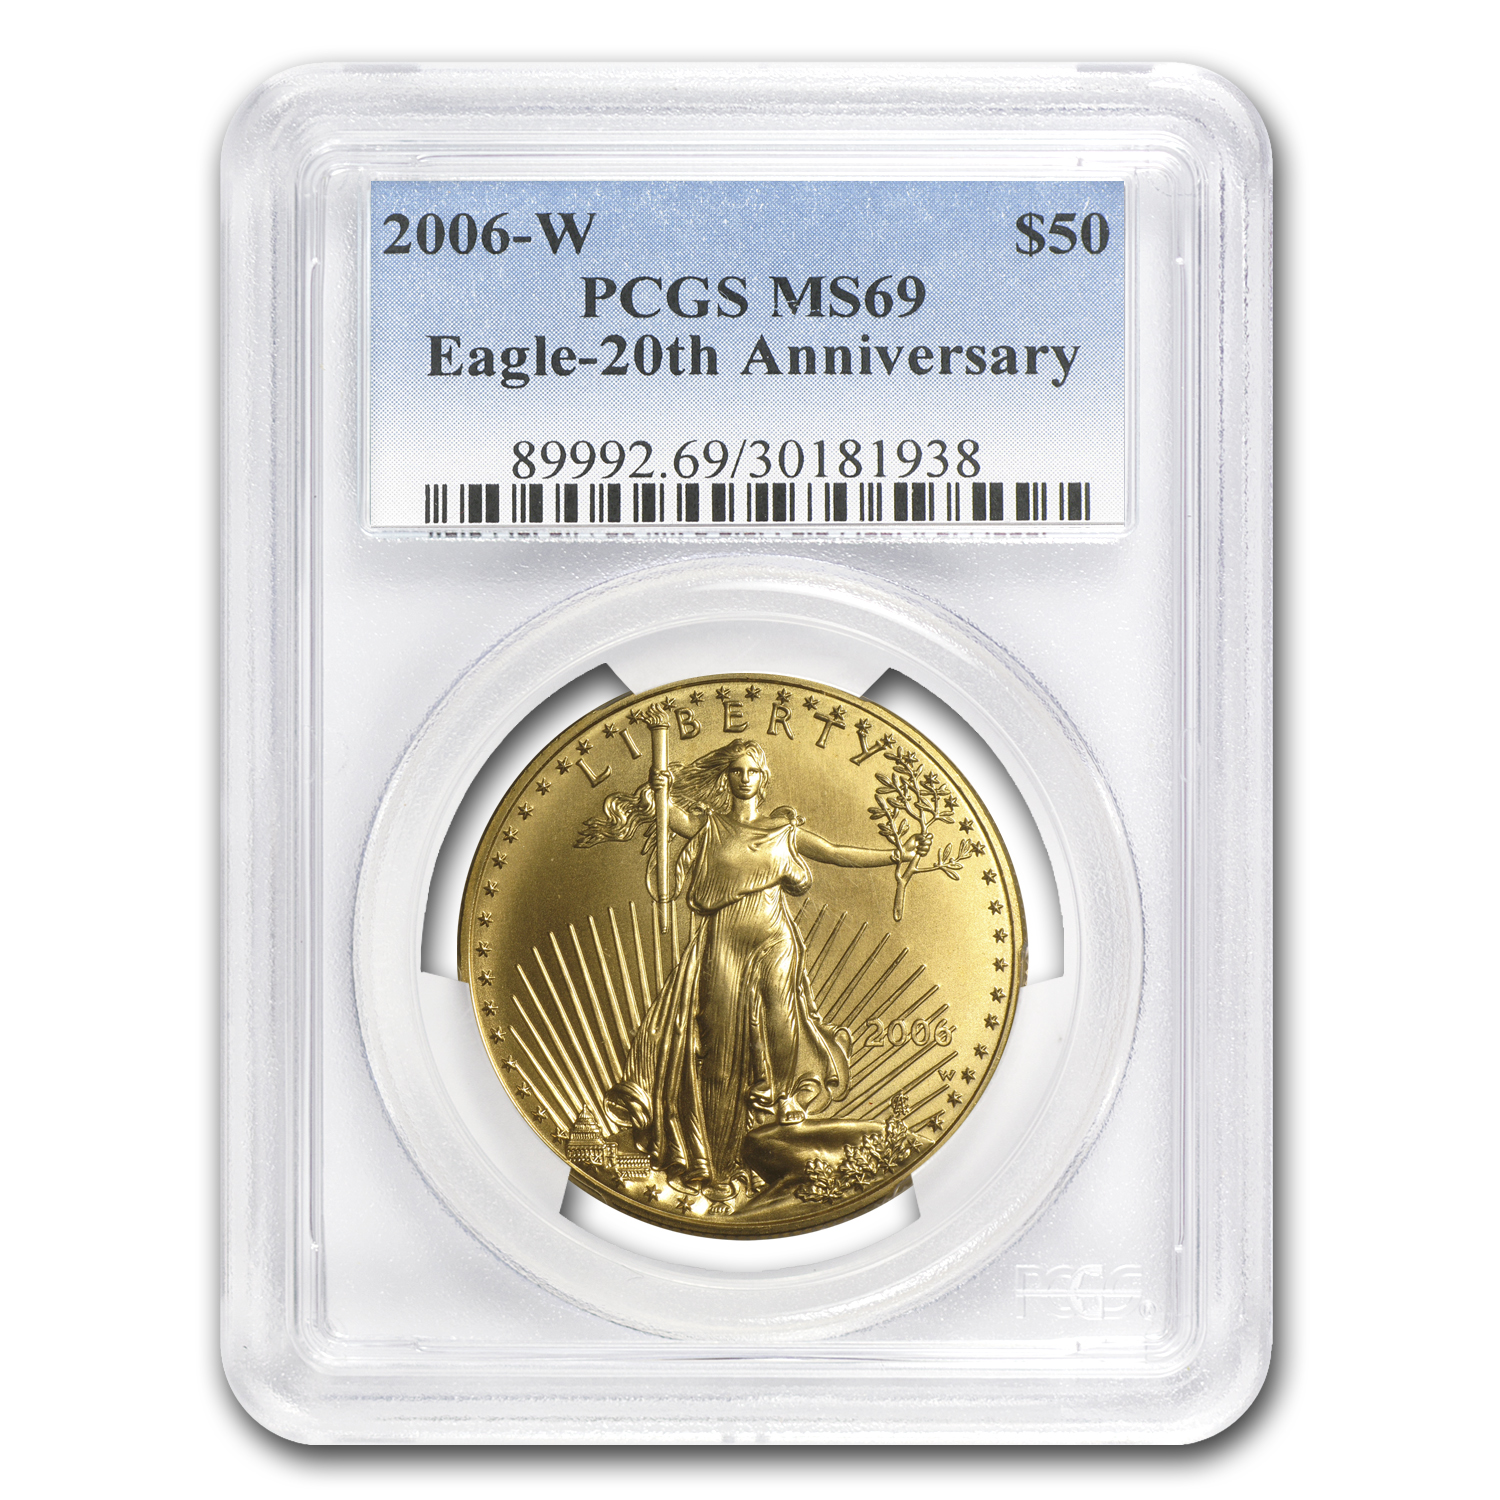 2006-W 1 oz Burnished Gold Eagle MS-69 PCGS